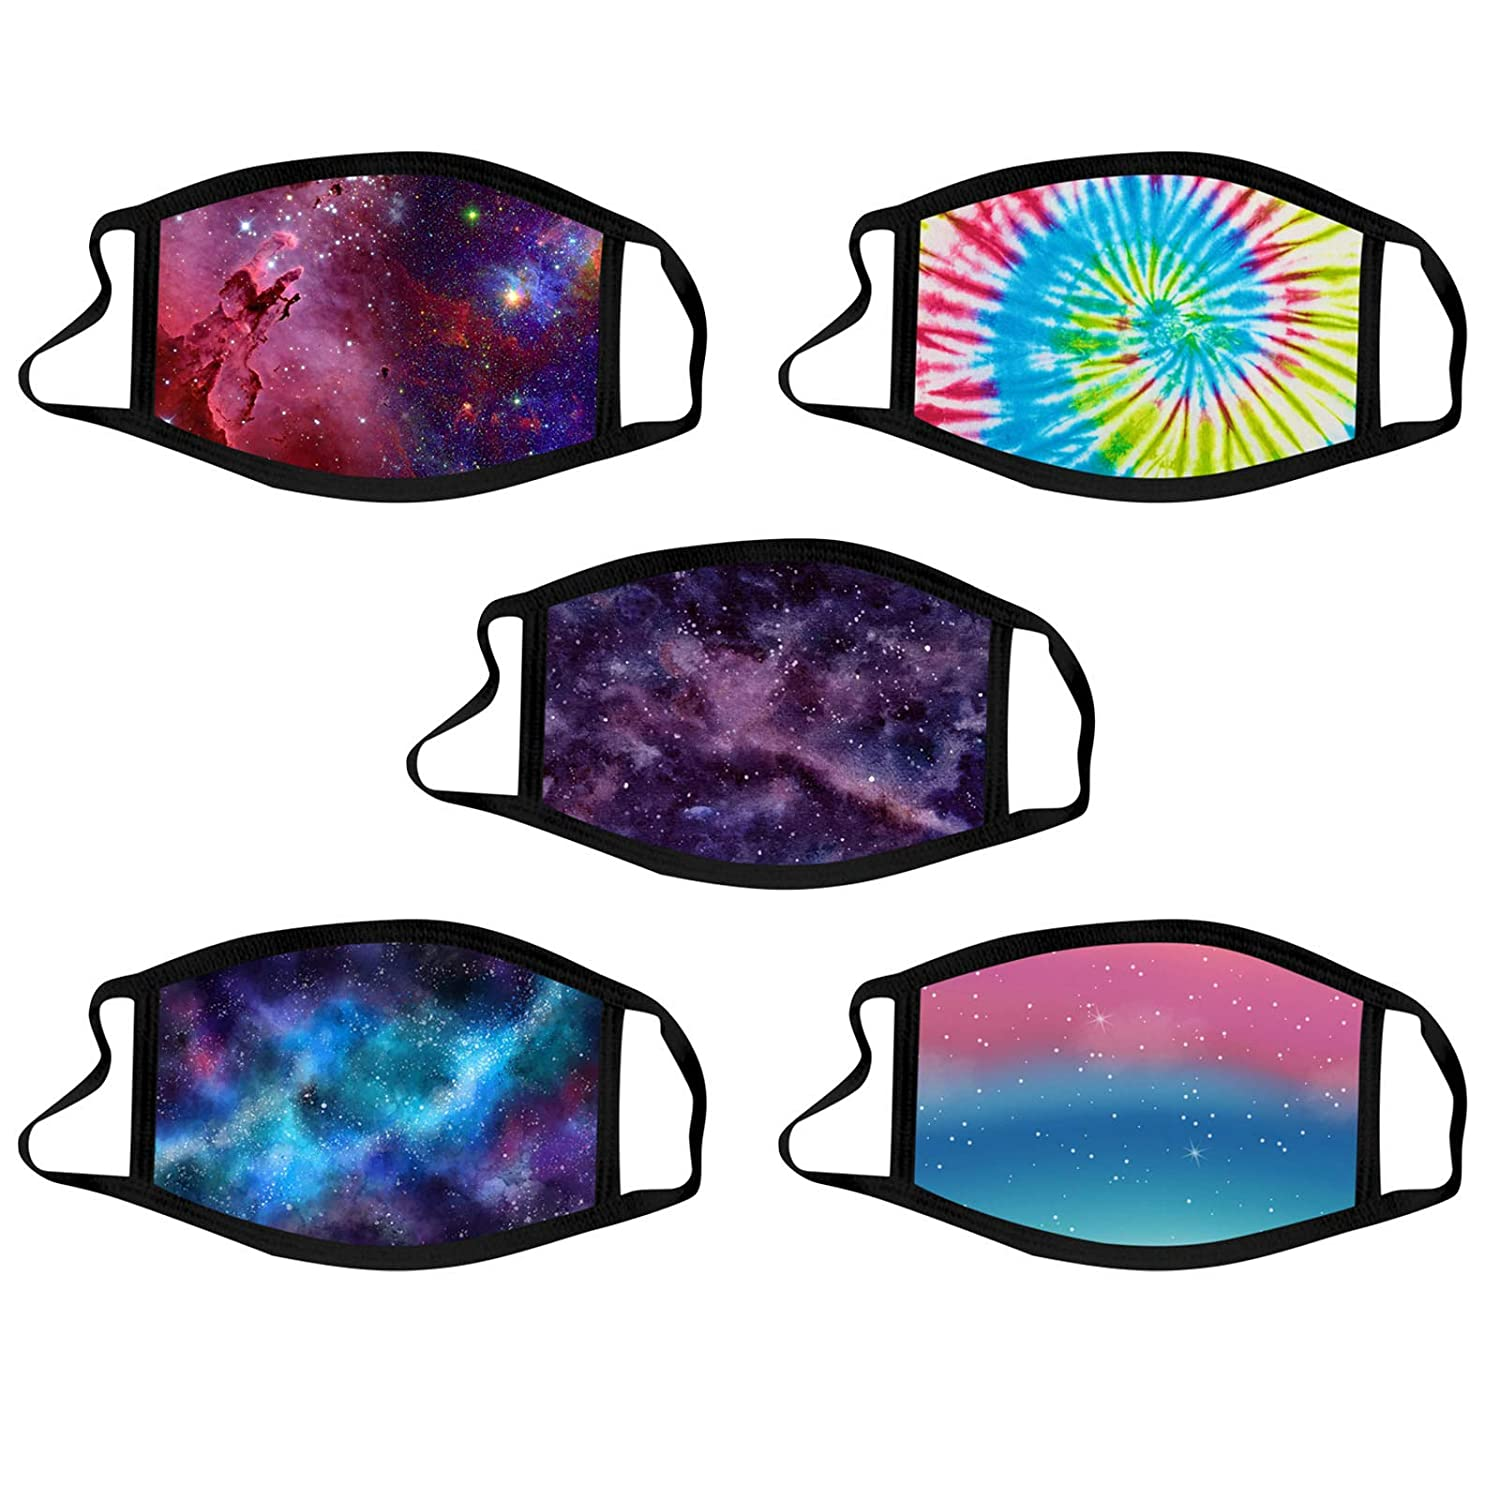 Face_Mask with Star Sky Tie Dye Printing for Adults Reusable Washable Windproof Breathable Dustproof Bandanas for Woman Indoors and Outdoors, Tie Dye C, 5PC